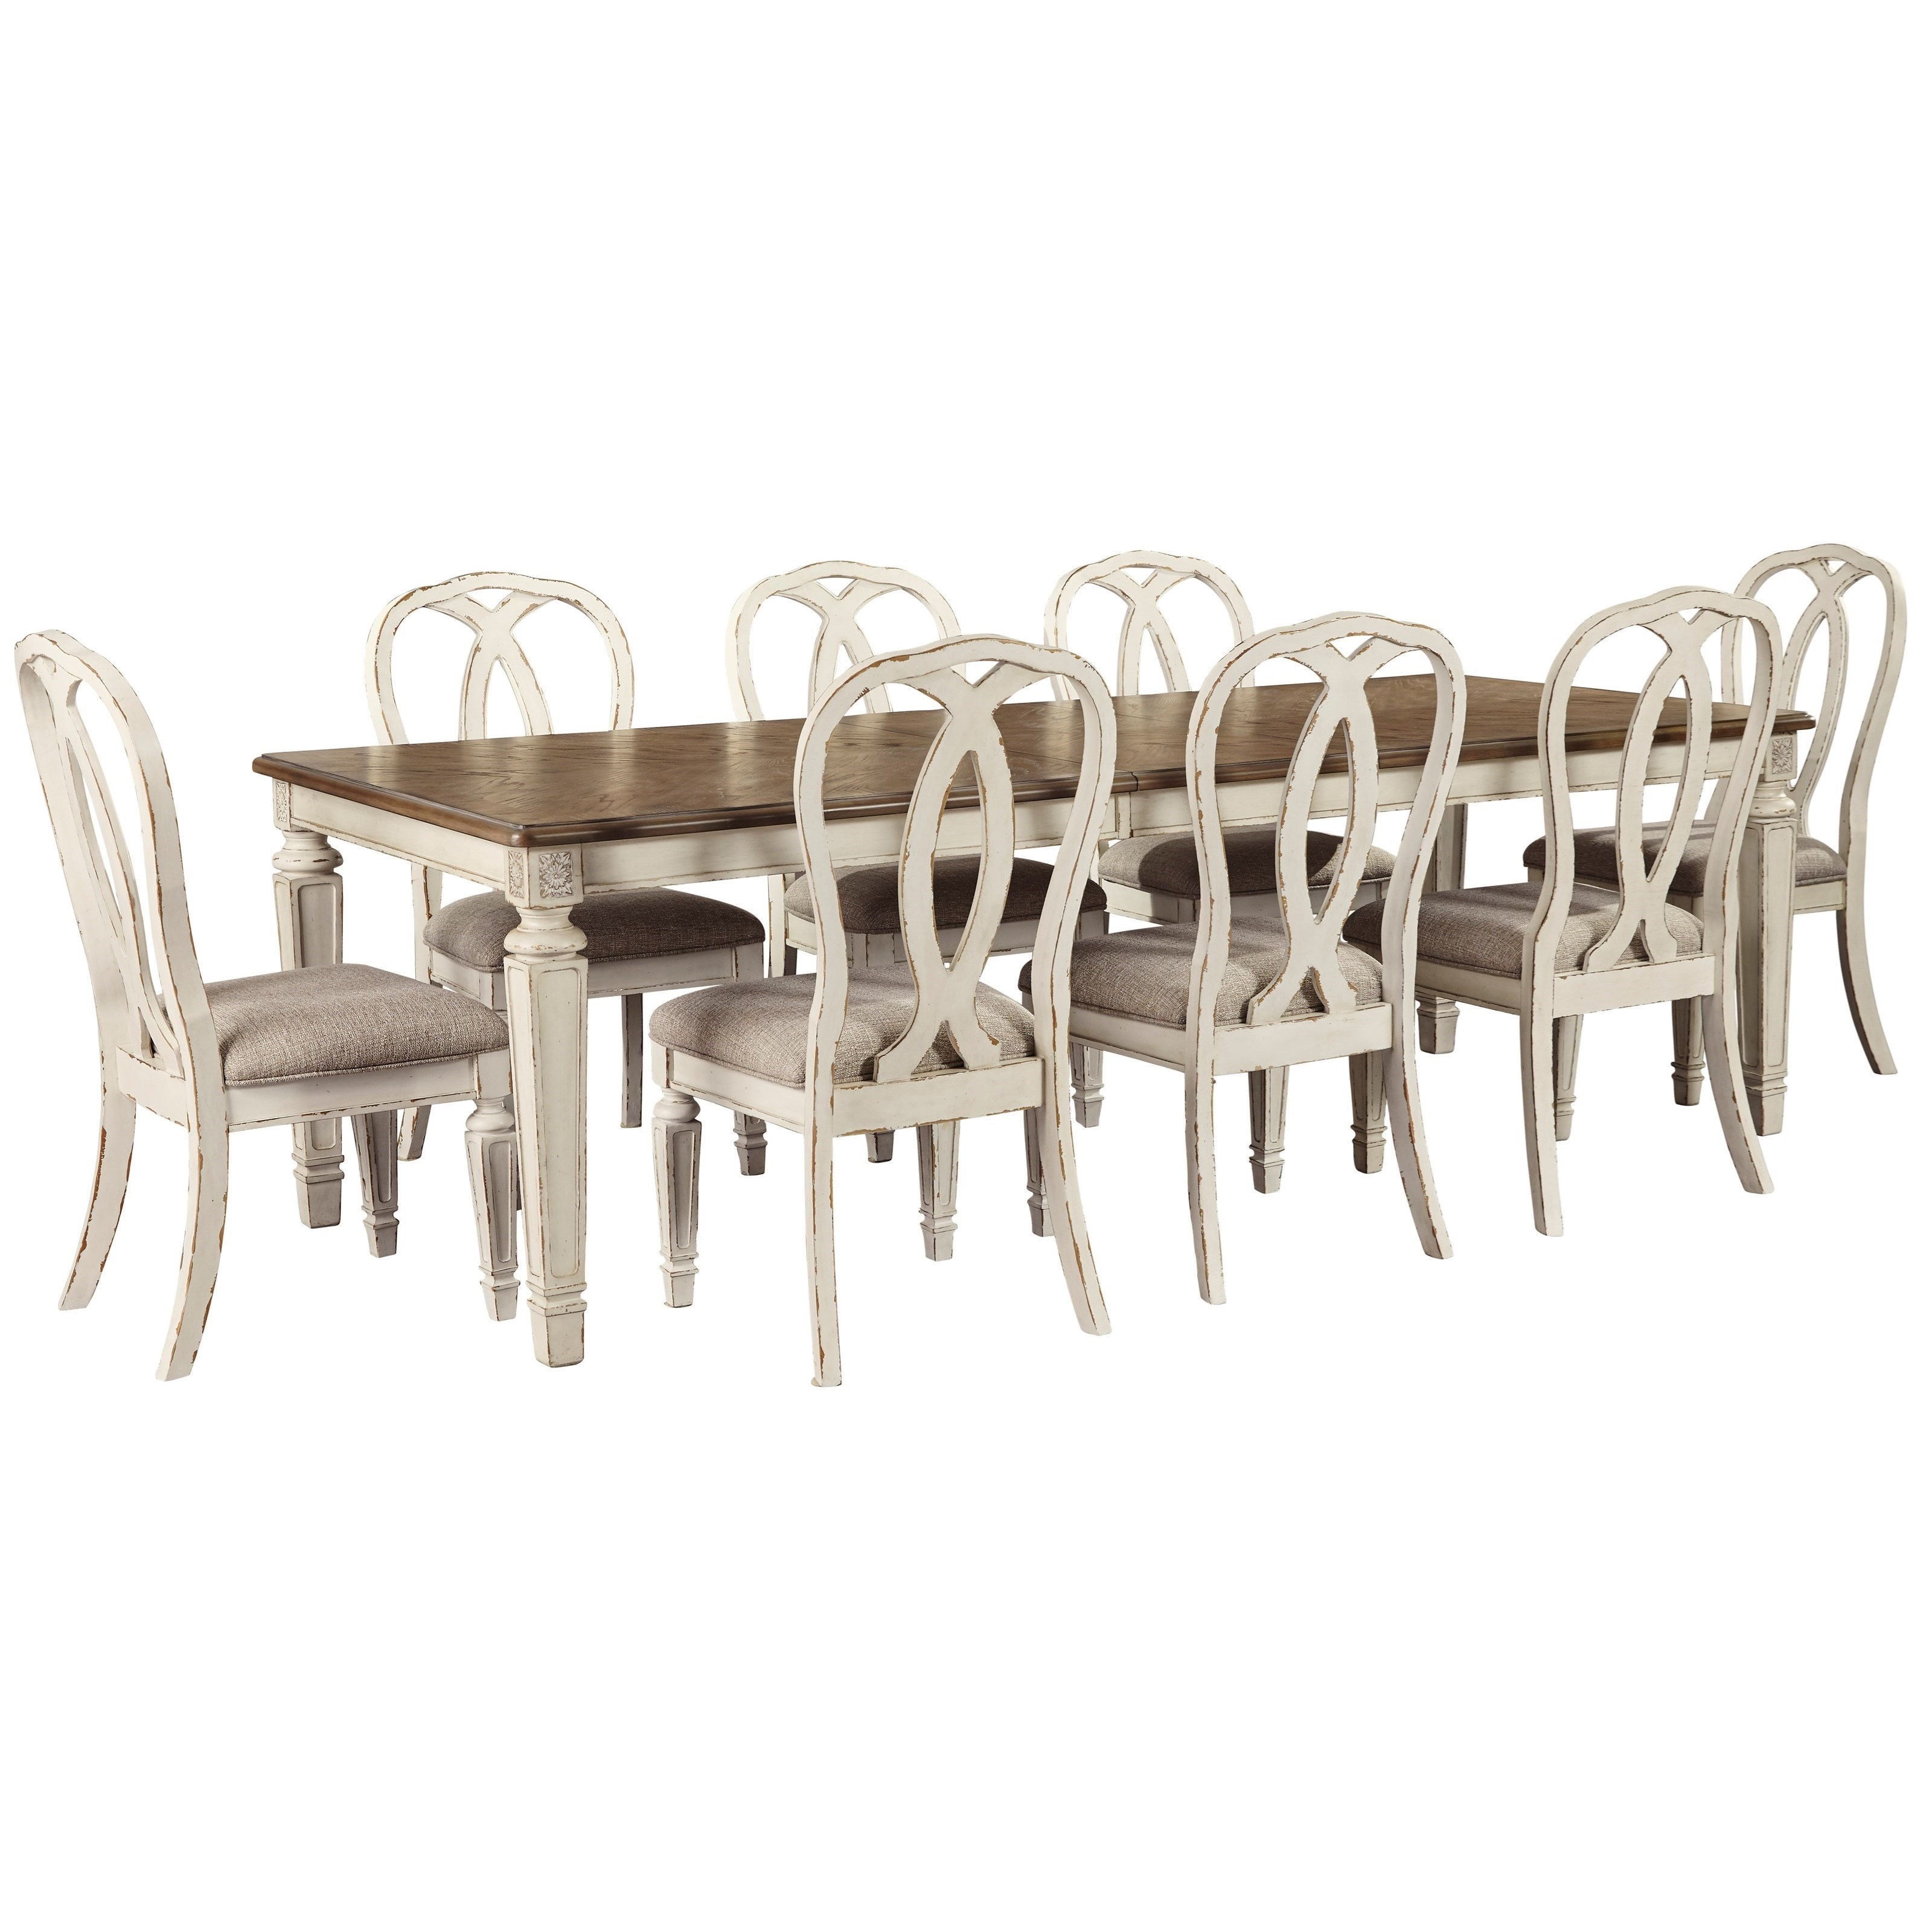 Realyn 9-Piece Rectangular Table and Chair Set by Signature Design by Ashley at Zak's Warehouse Clearance Center